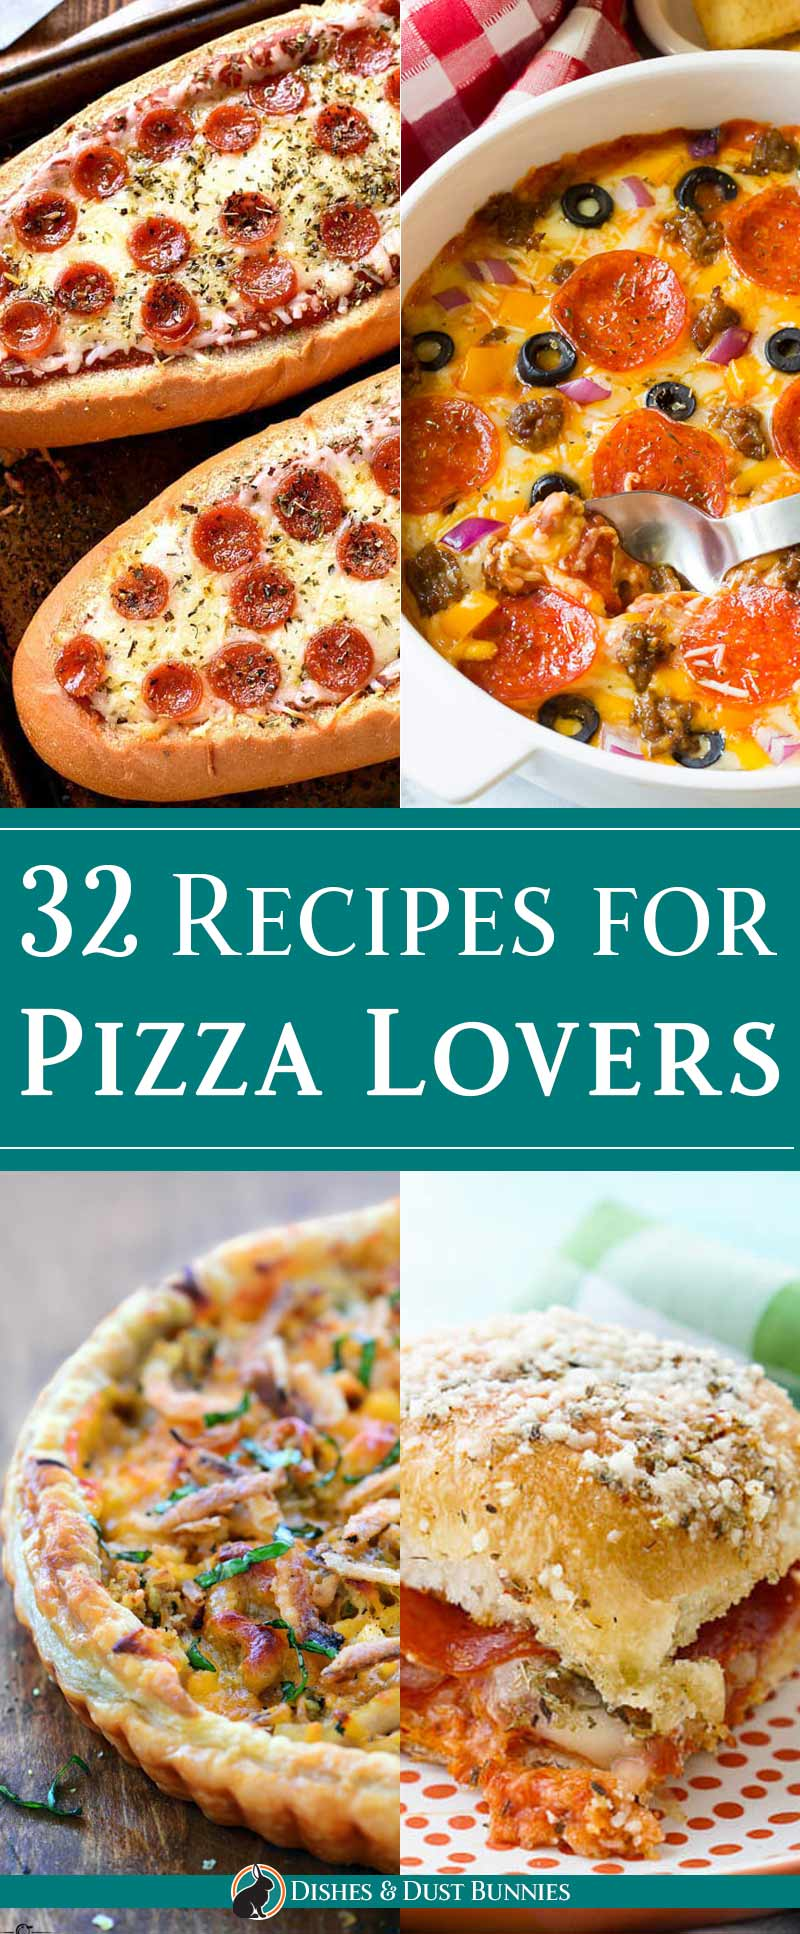 32 Recipes for Pizza Lovers - Dishes and Dust Bunnies